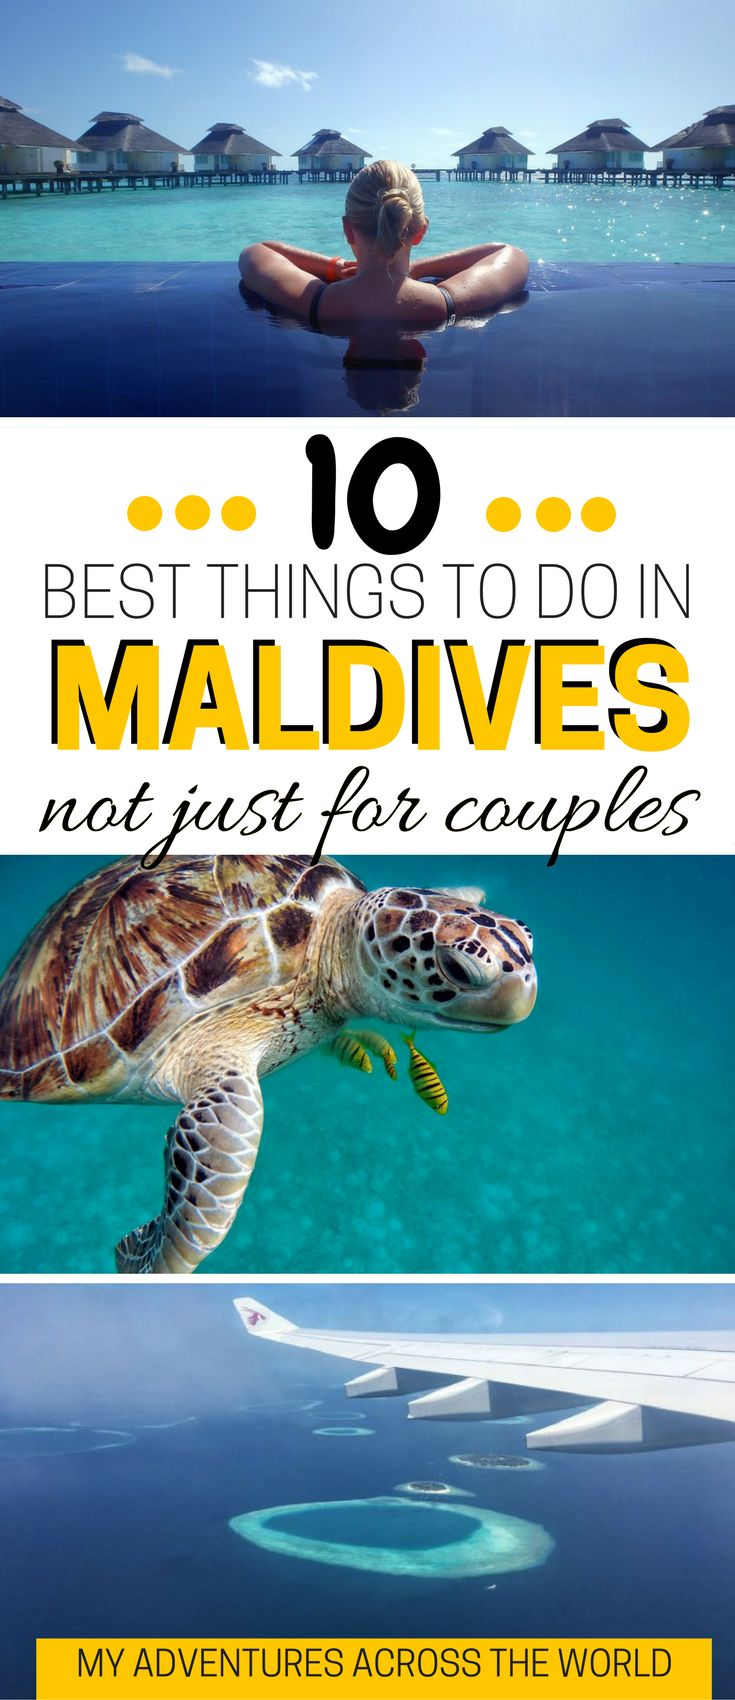 Who said that the Maldives are just for couples? Click for the 10 best things to do in Maldives with or without a partner!   What to do in Maldives   Maldives travel guide   Maldives travel tips  - via @clautavani